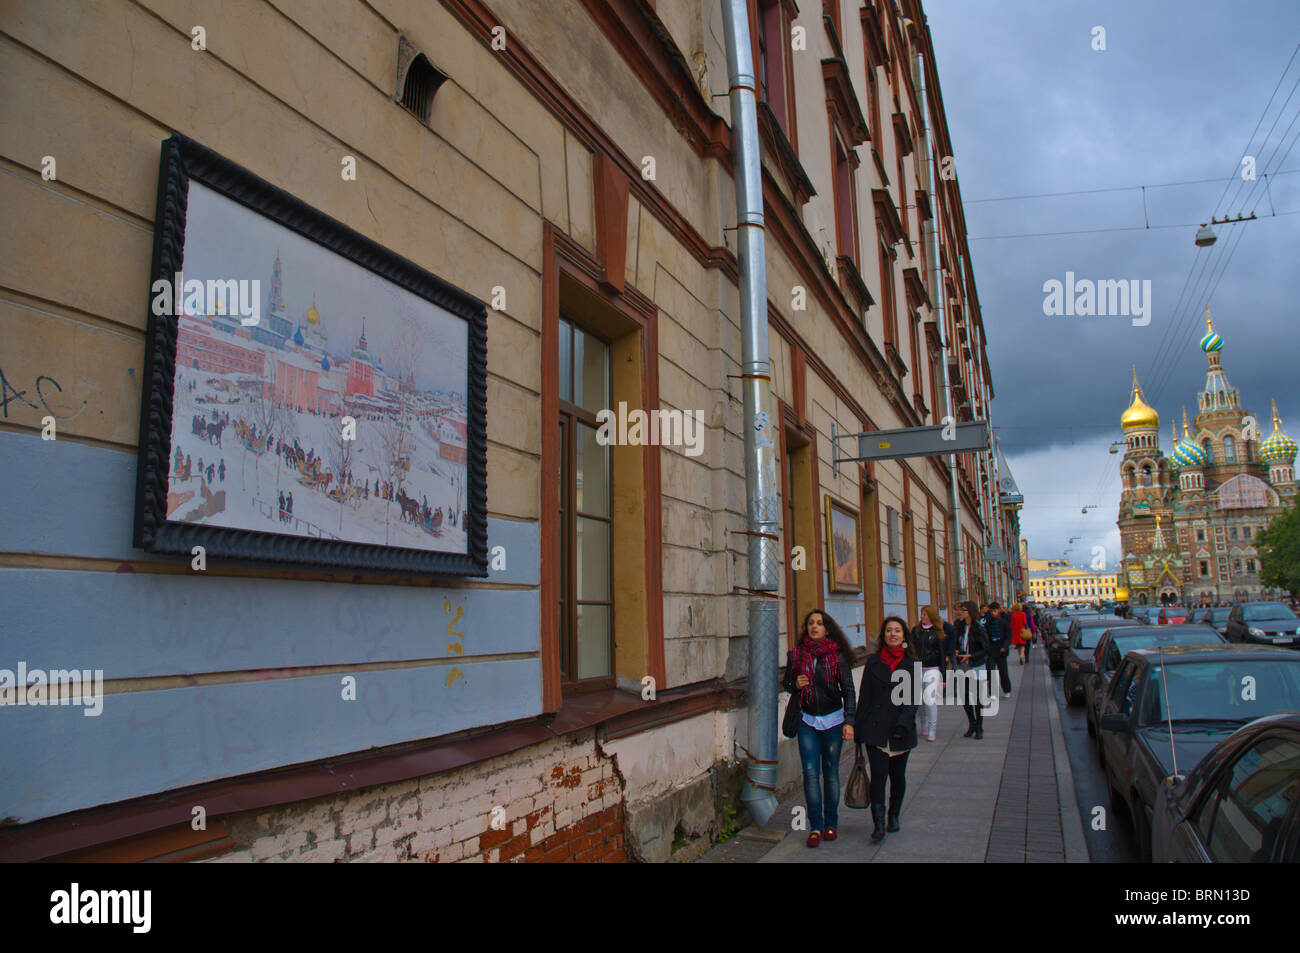 Street scene by Griboedova canal central St Petersburg Russia Europe - Stock Image